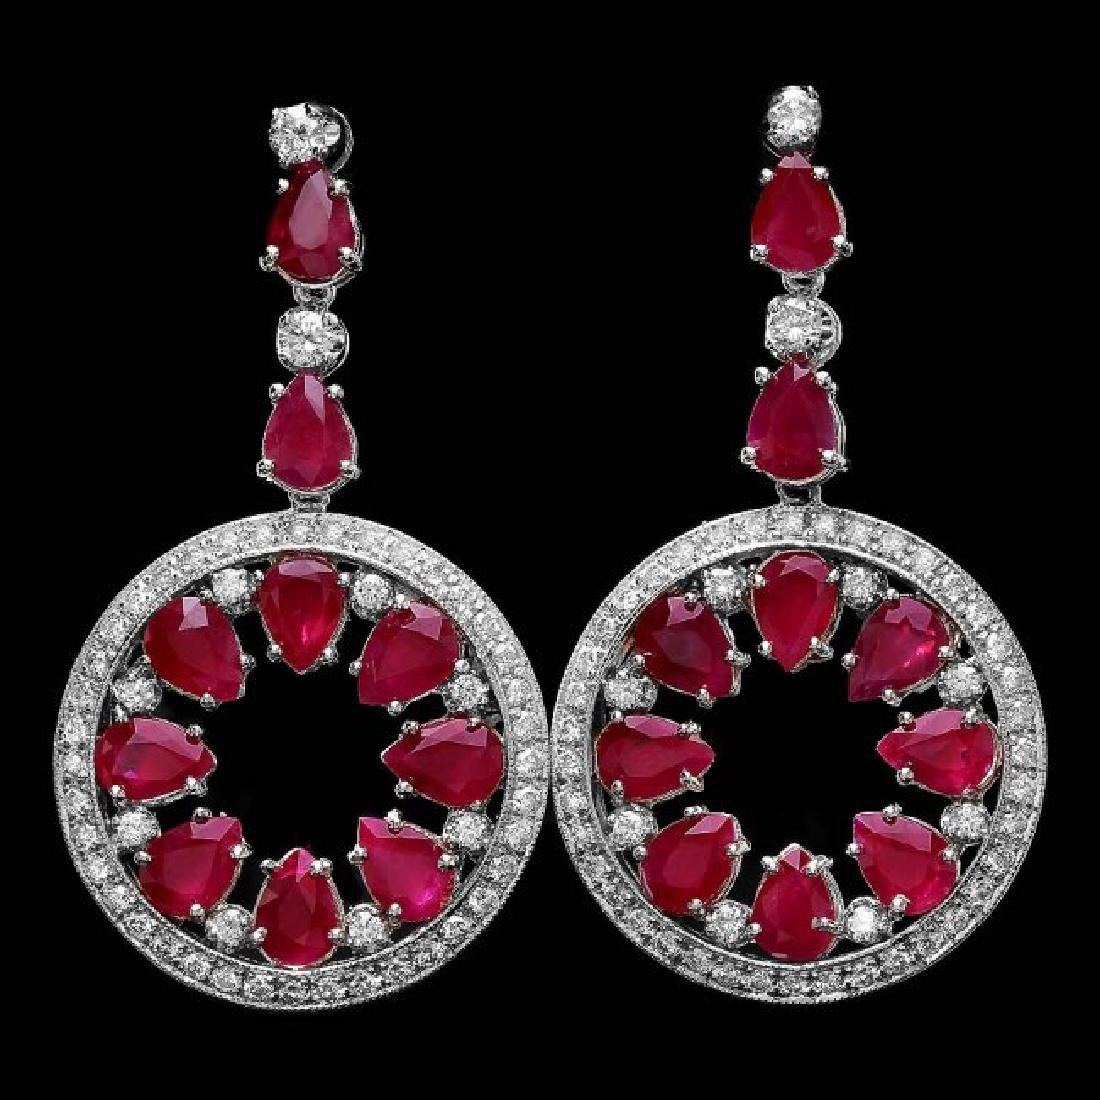 14k Gold 18.50ct Ruby 1.60ct Diamond Earrings - 3